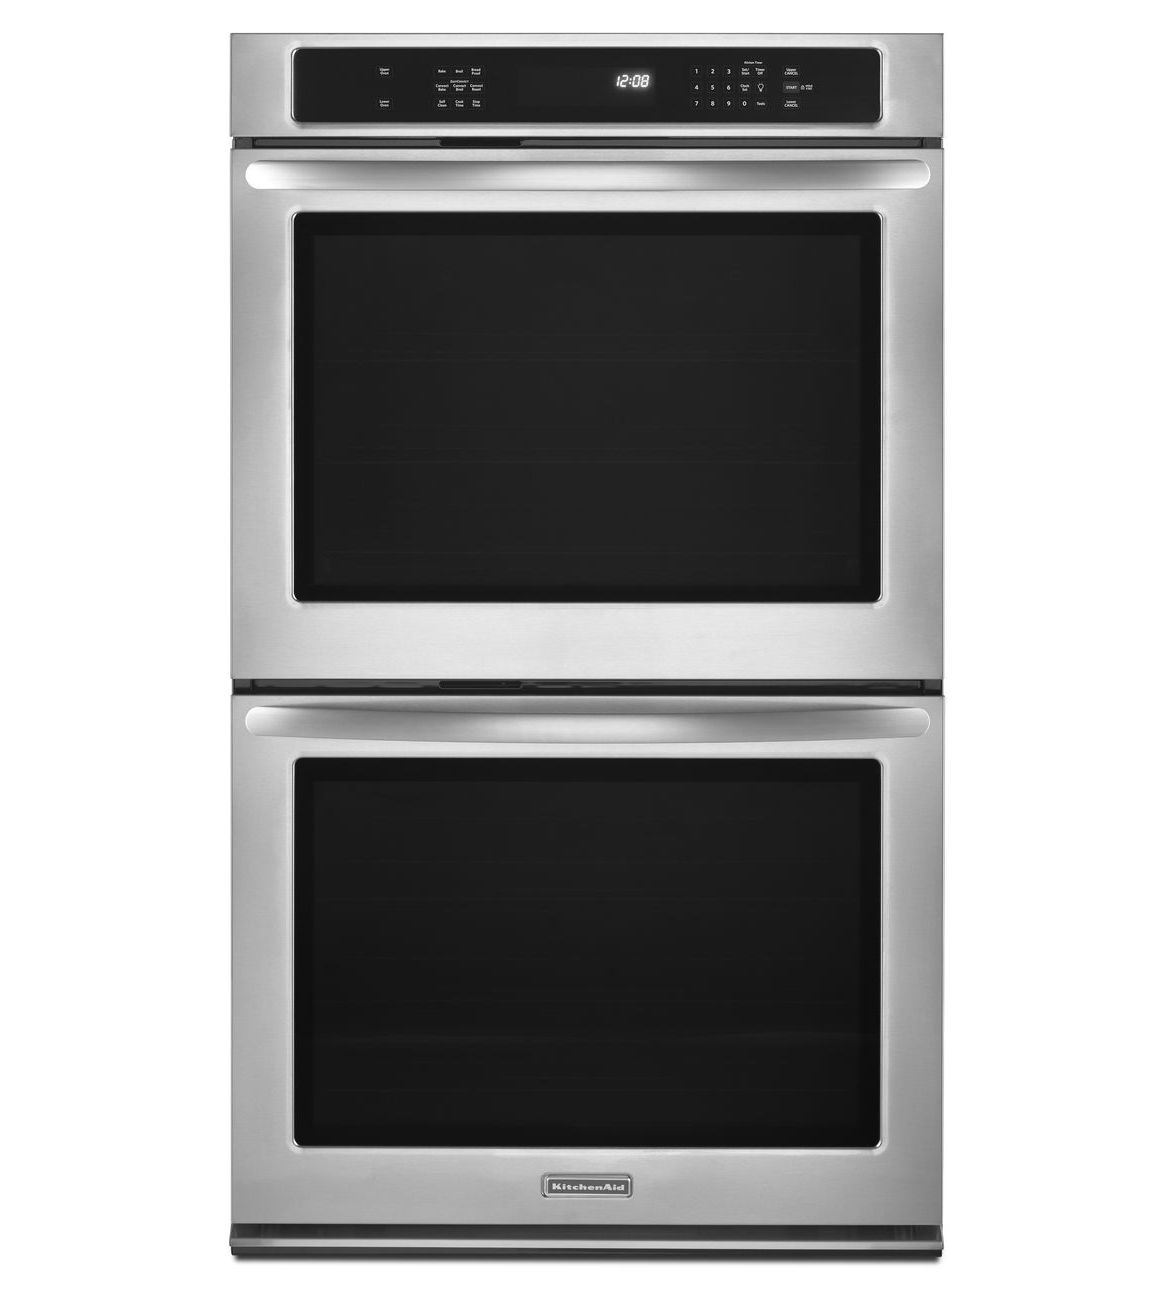 Kebs209bss Kitchenaid 30 Convection Built In Architect Series Ii Double Oven Stainless